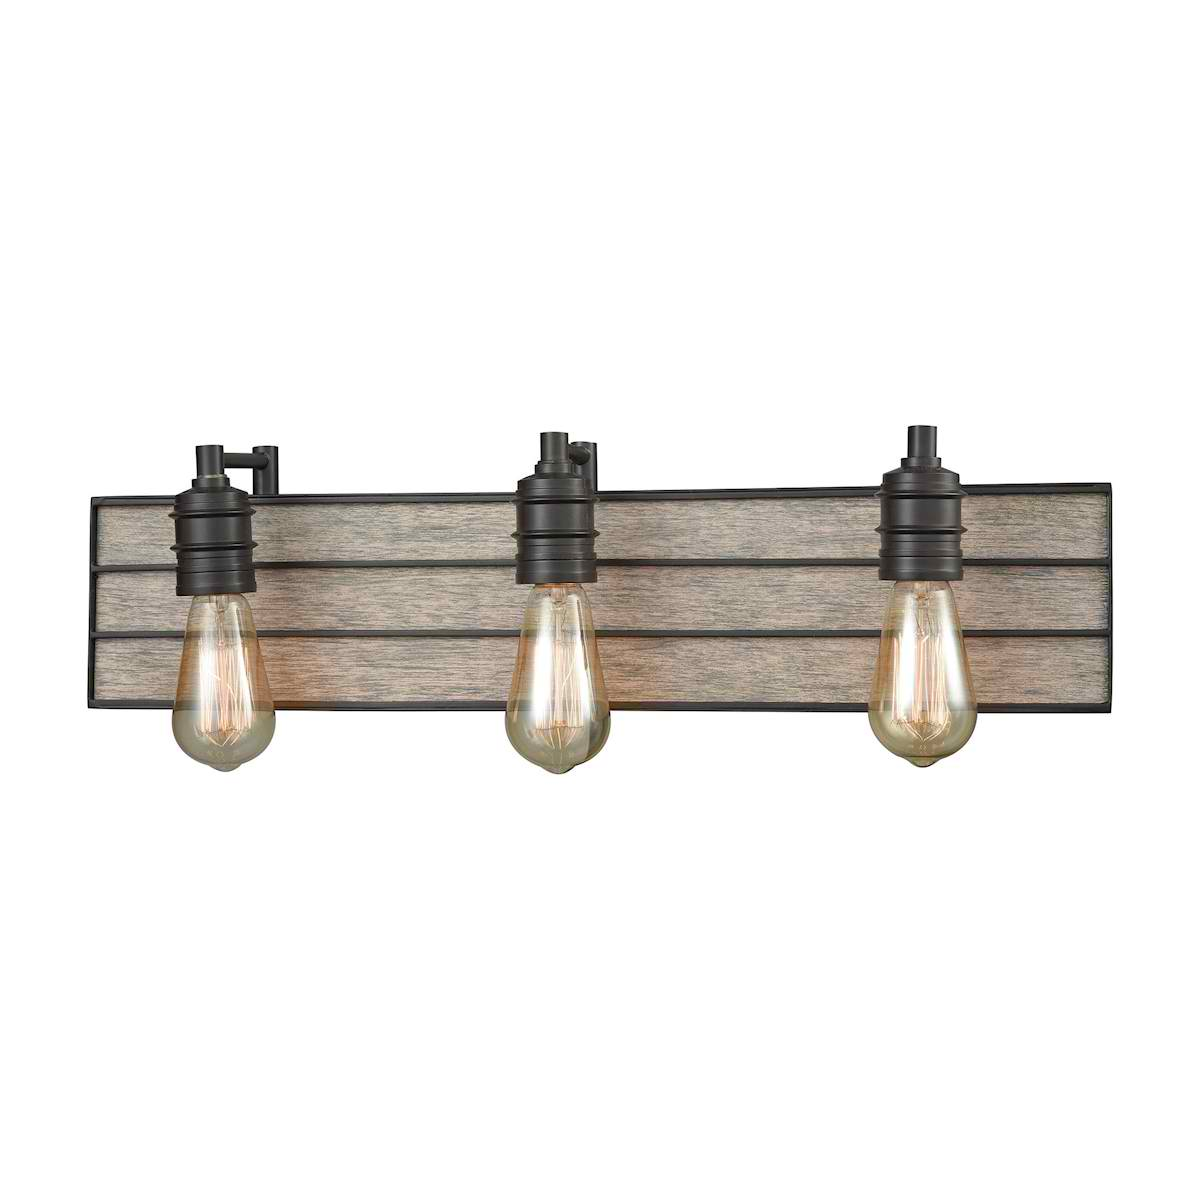 Brookweiler 3 Light Vanity in Oil Rubbed Bronze with Washed Wood Backplate